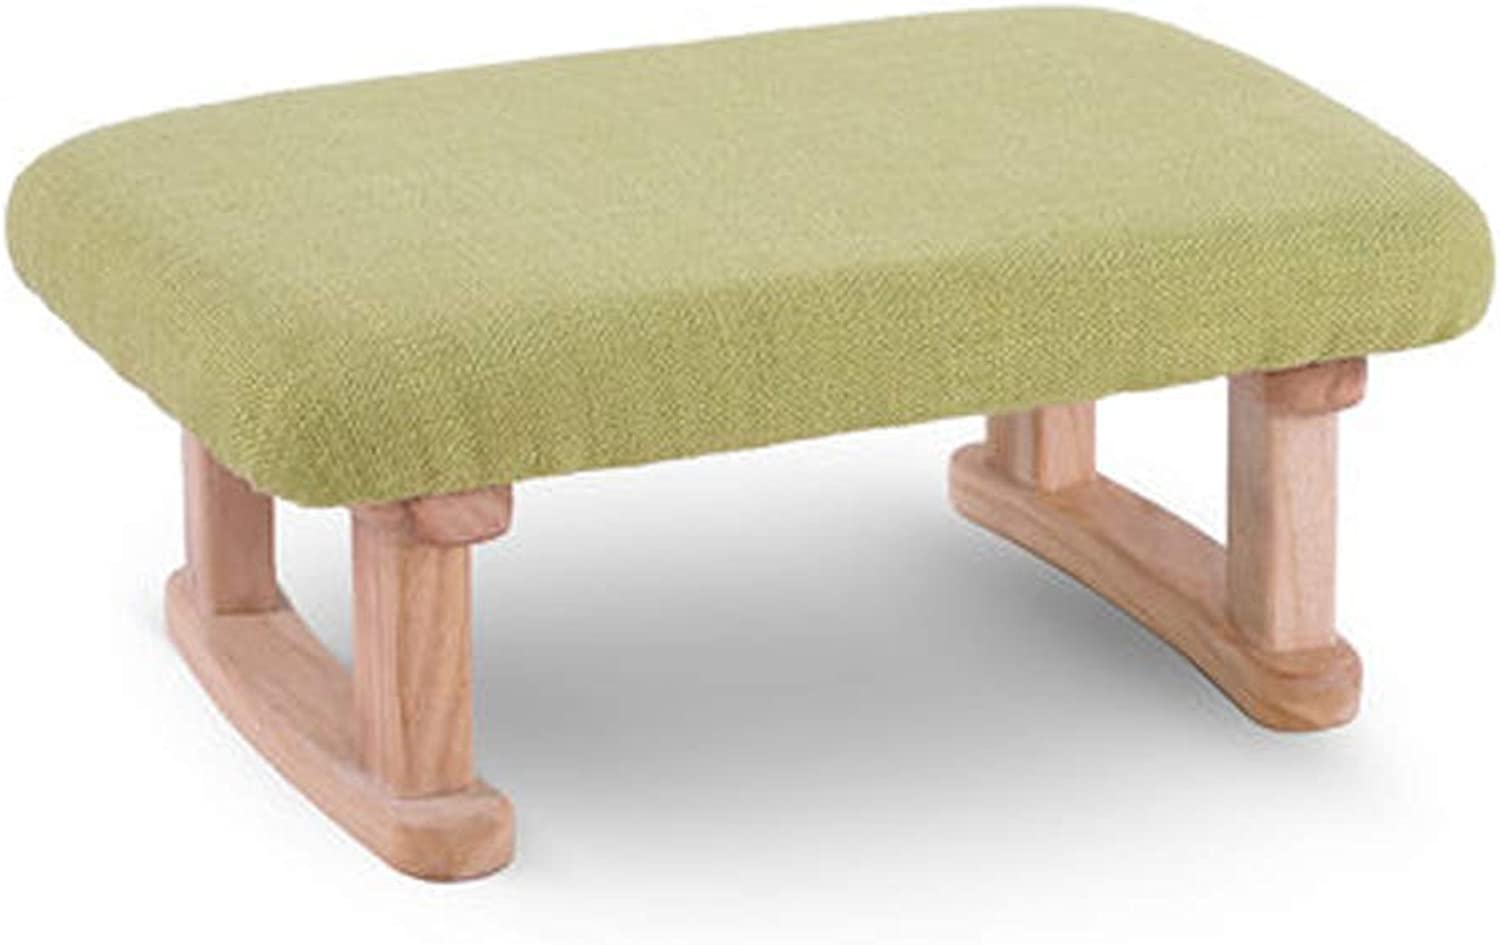 KGMYGS Simple shoes Bench, Home Solid Wood Chair, Stylish Sofa Bench, Bed End Stool, Creative Small Bench (color   GREEN)